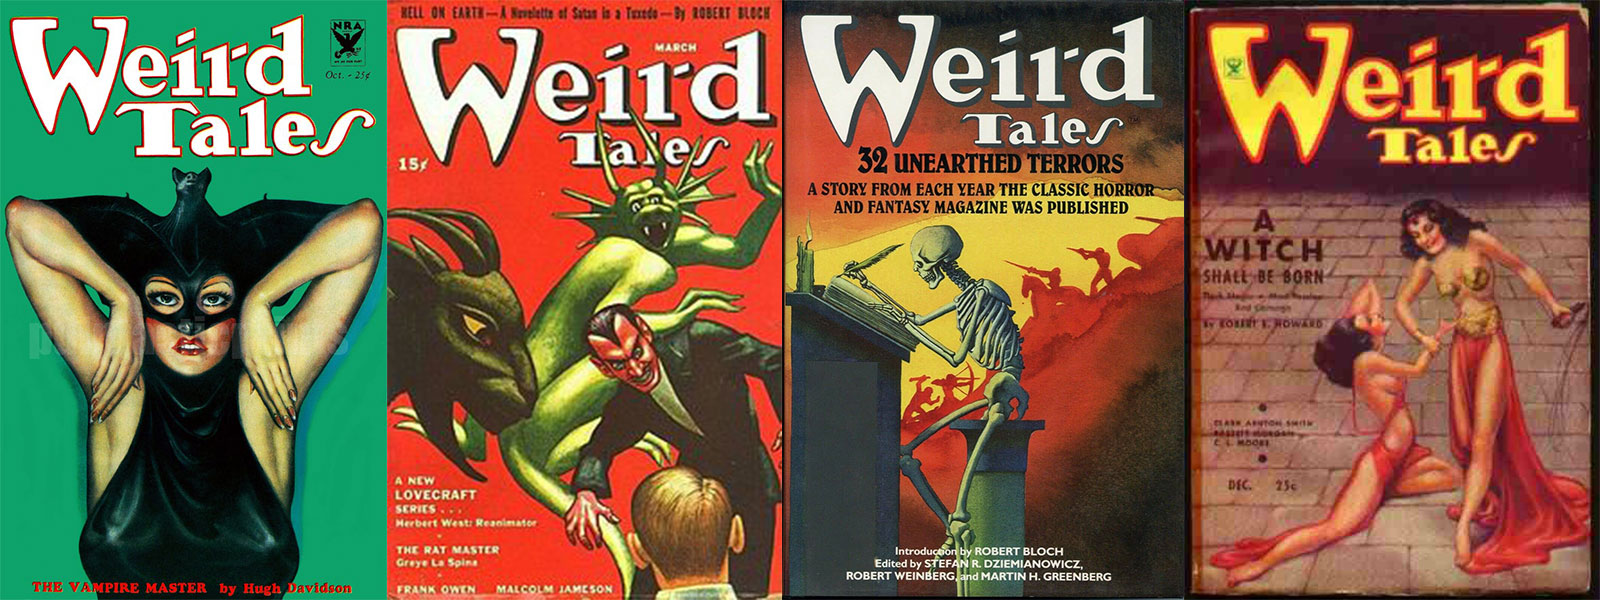 weird tales list of issues banner